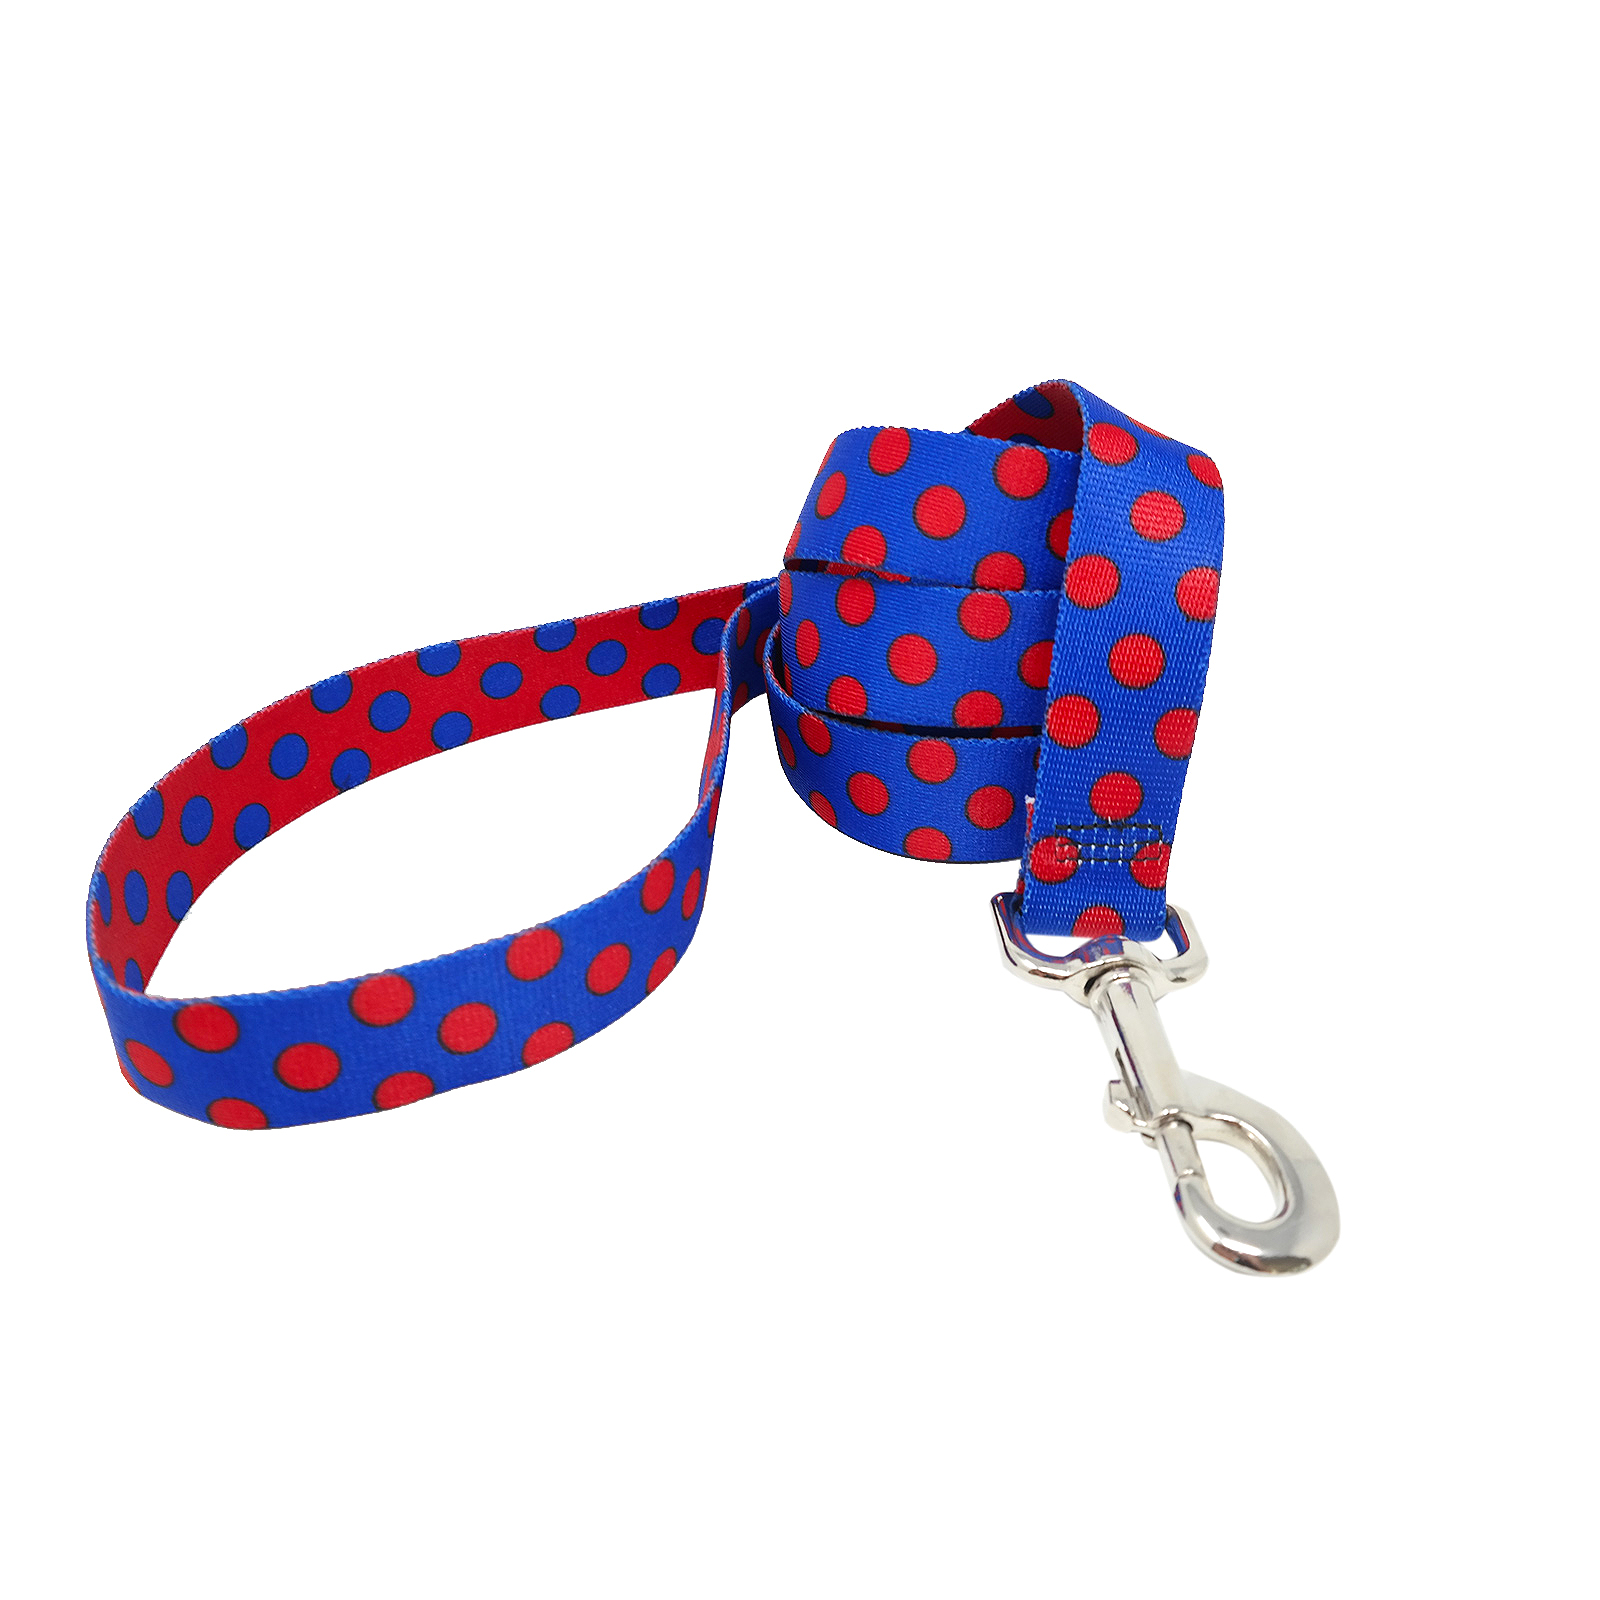 Royal Blue & Red Polka Lead